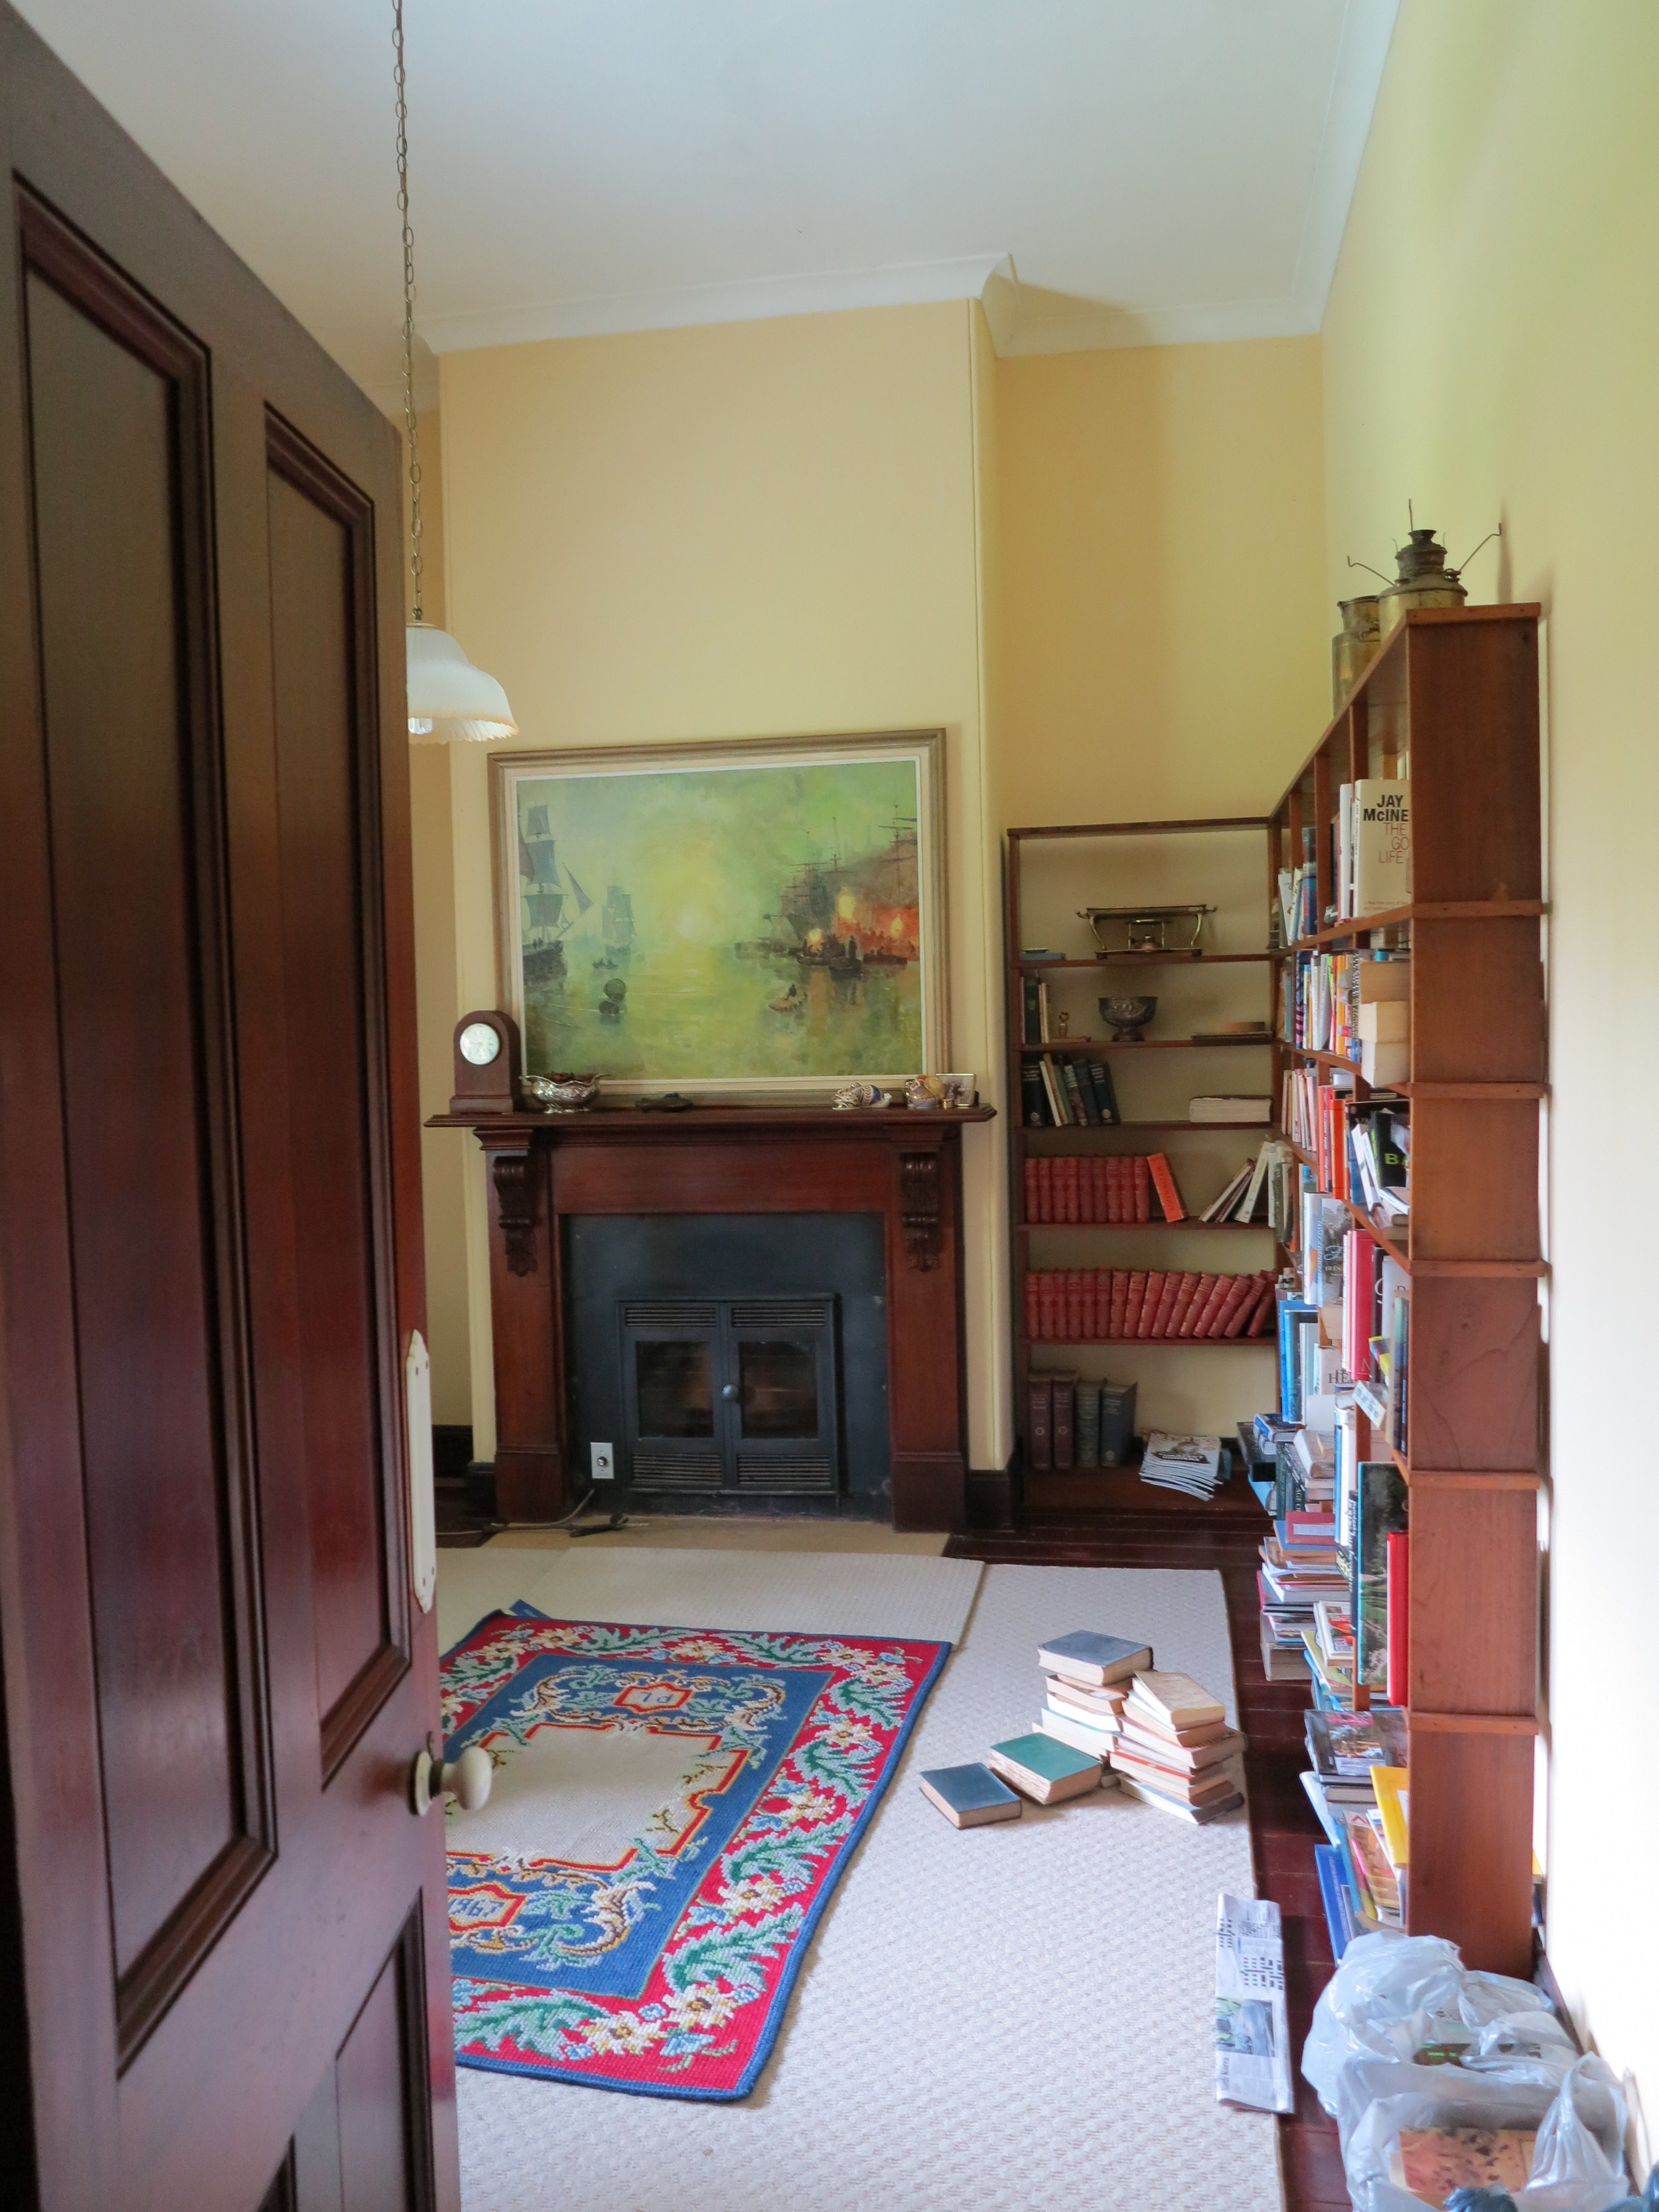 The study. Before.